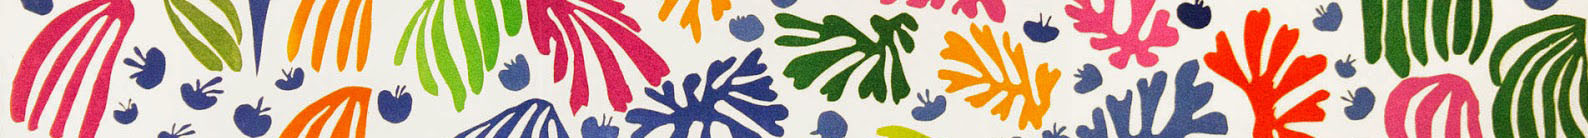 Section of Henri Matisse's The Parakeet and the Mermaid